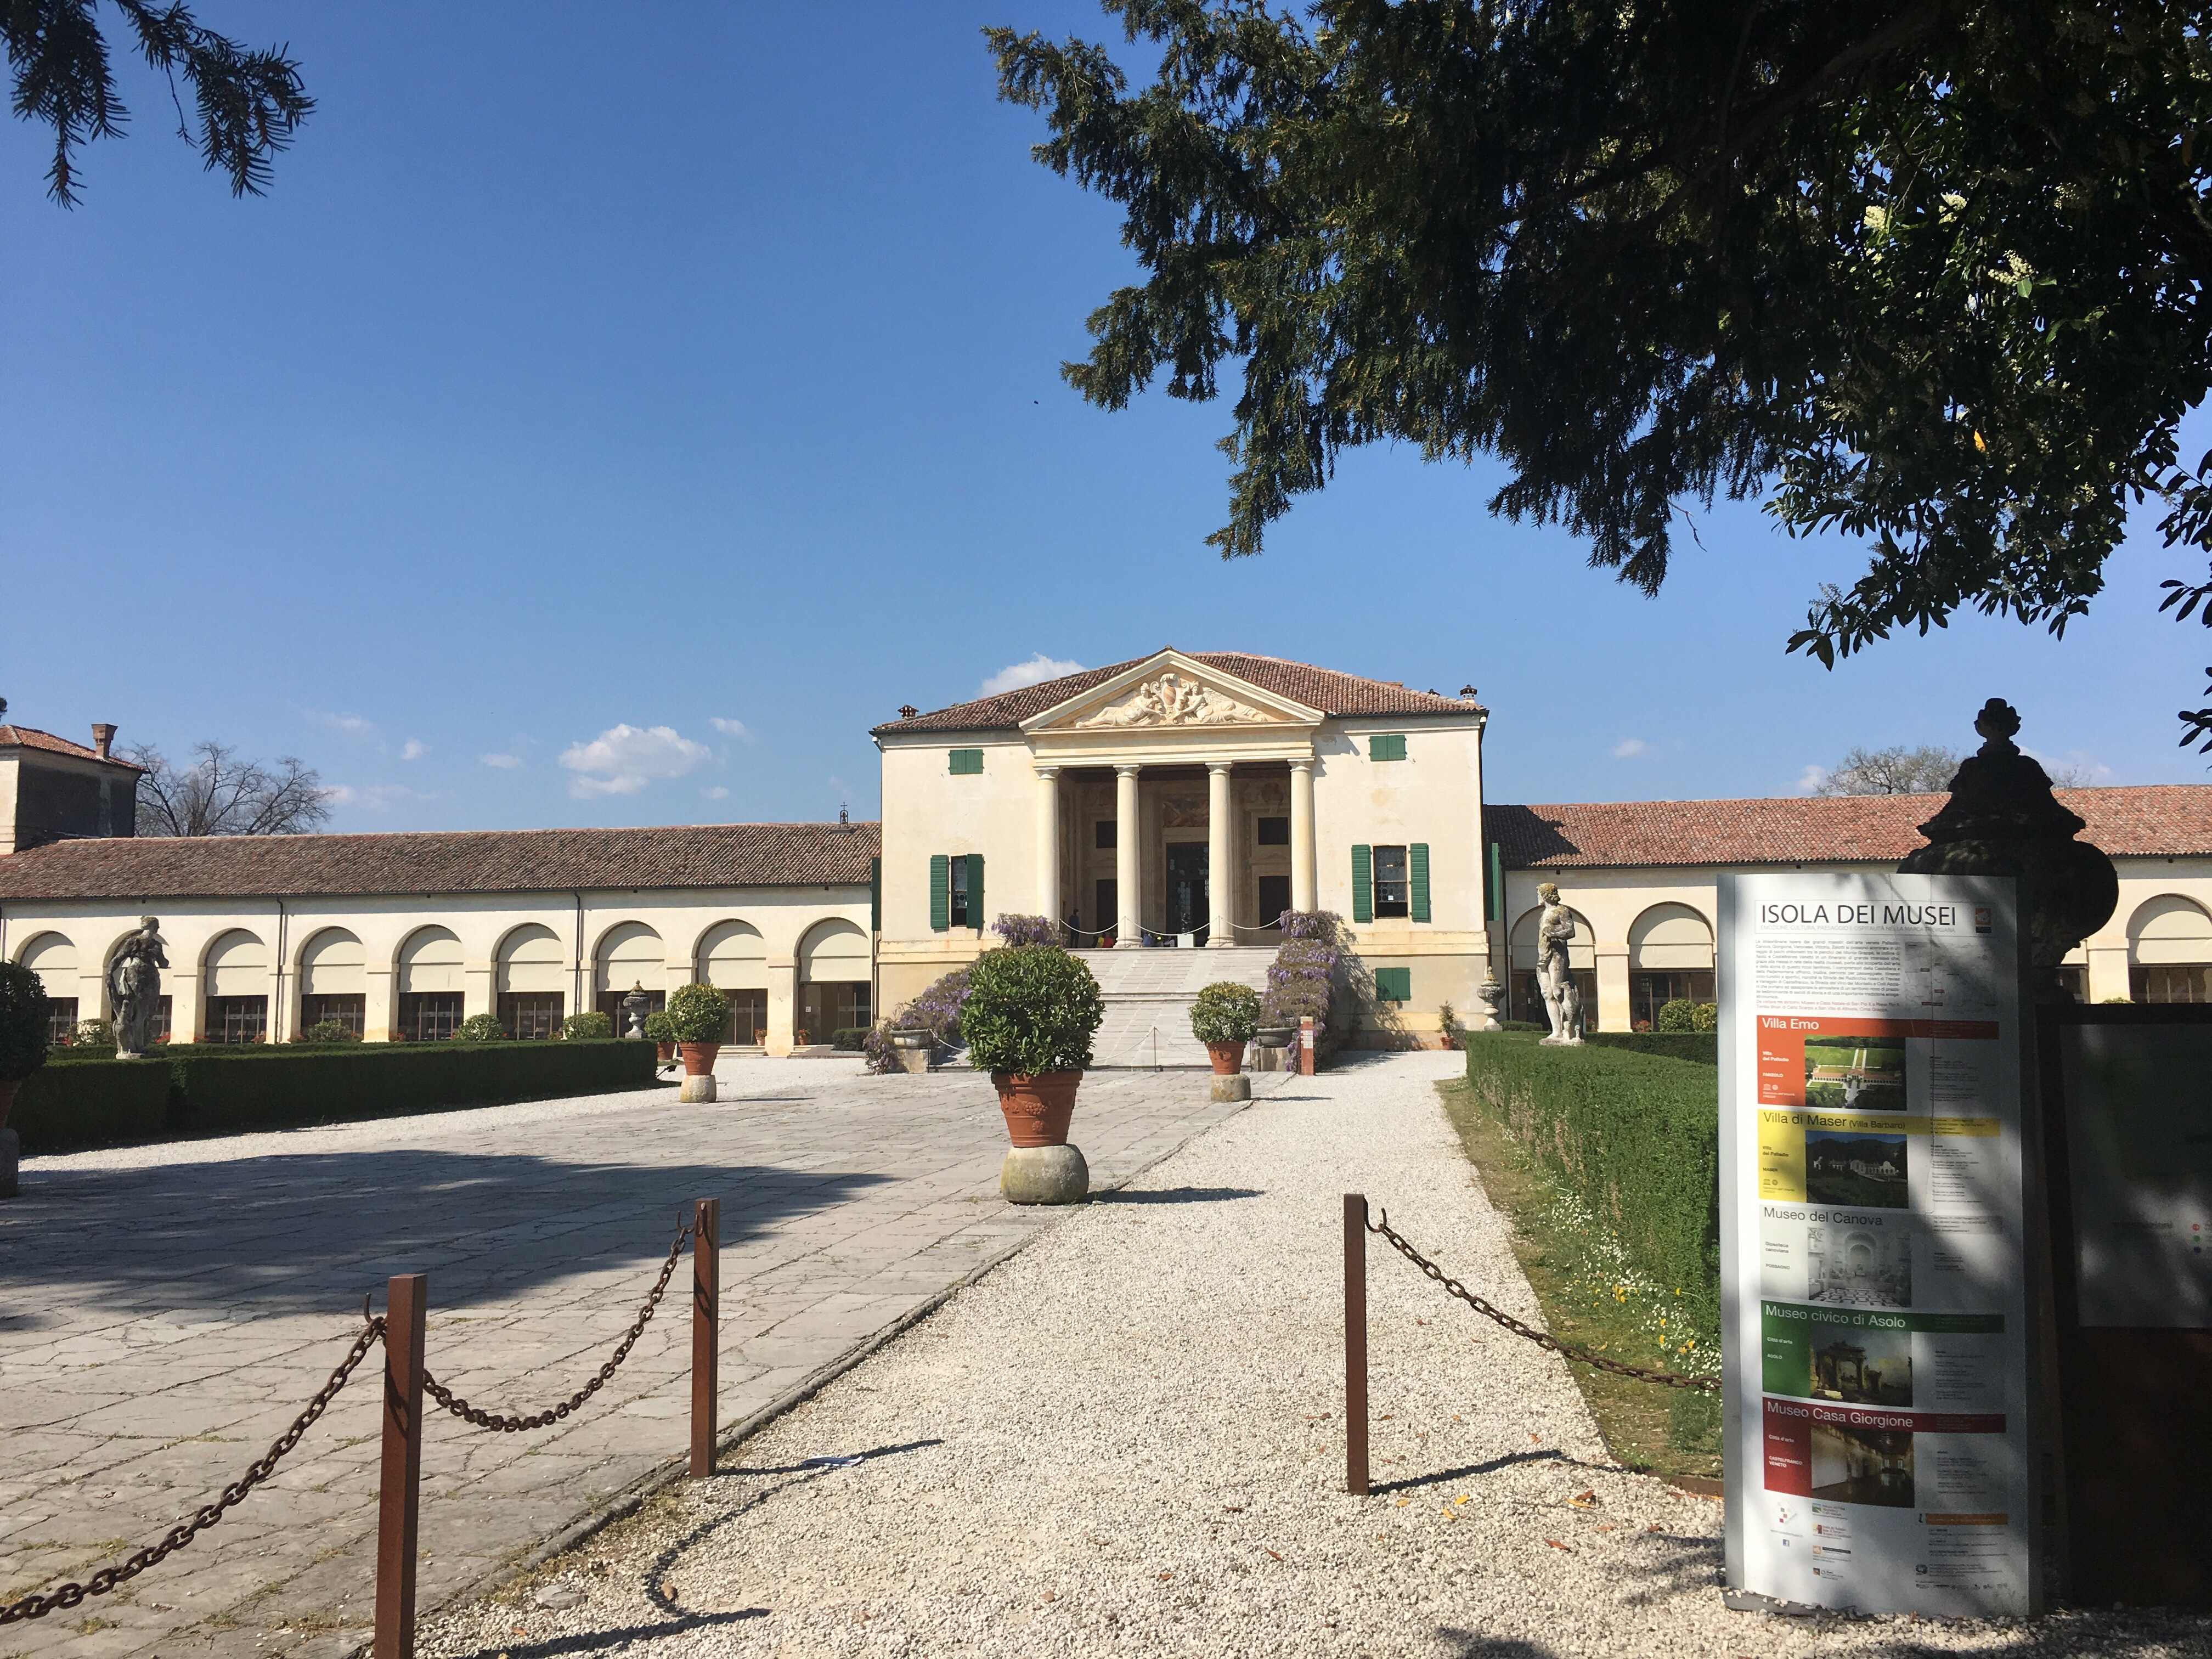 Villa Emo, Palladian villa with magnificent frescoes by GB Zelotti - www.educated-traveller.com